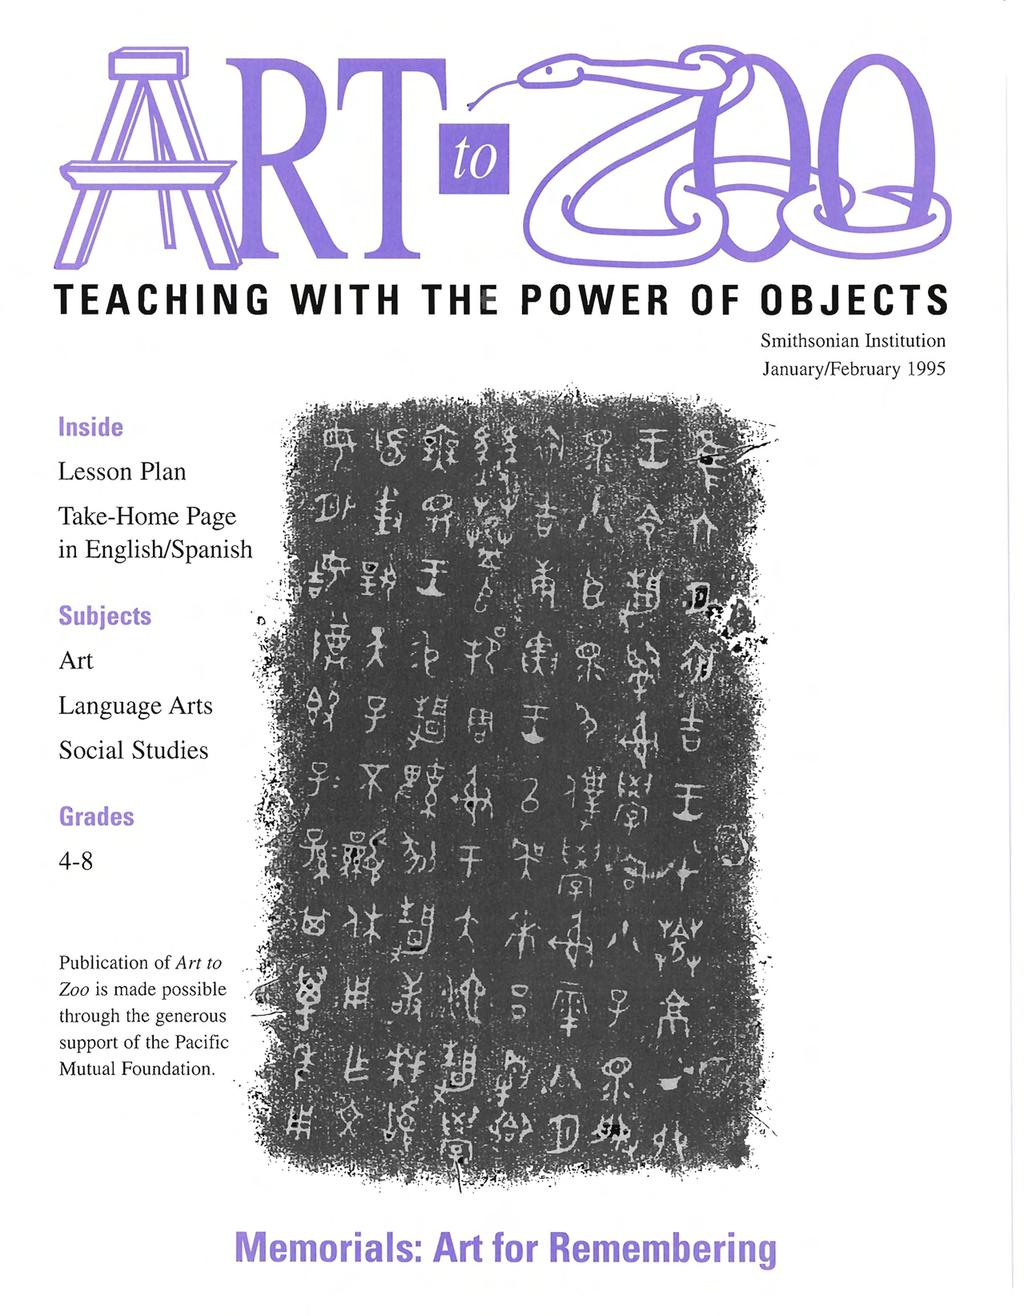 II TEACHING WITH THE POWER OF OBJECTS Inside Lesson Plan Take-Home Page in English/Spanish Smithsonian Institution JanuarylFebruary 1995 Subjects Art Language Arts